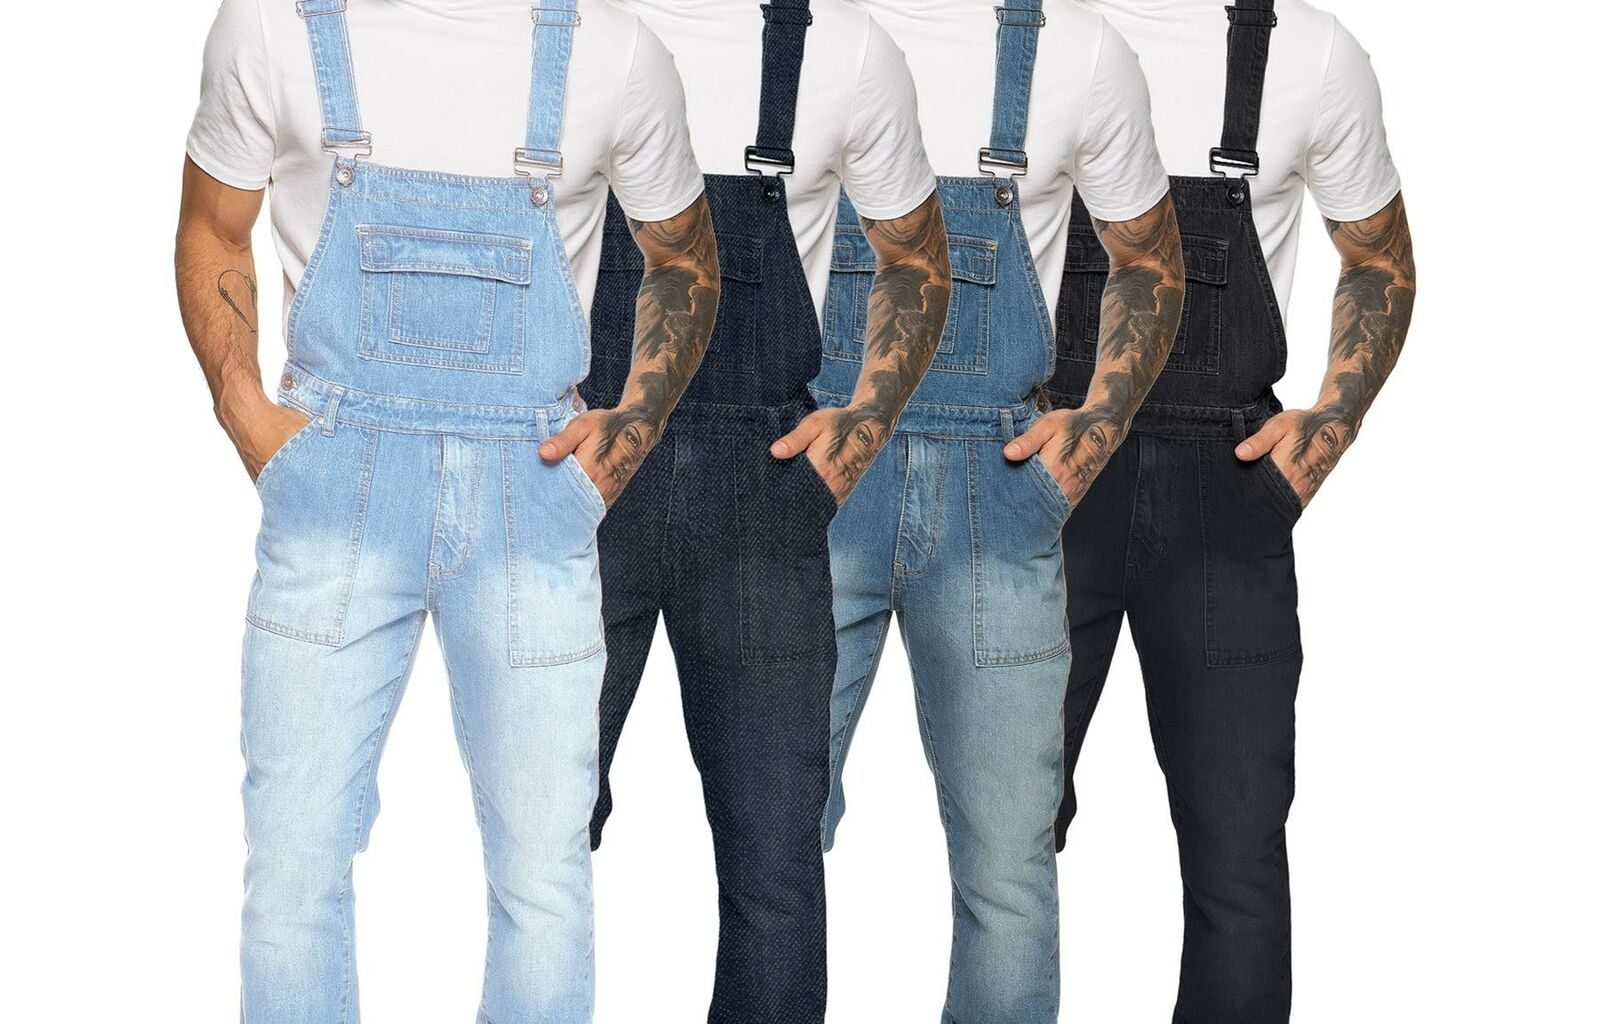 Different Styles of Black Overalls or Dungarees for Men and Women